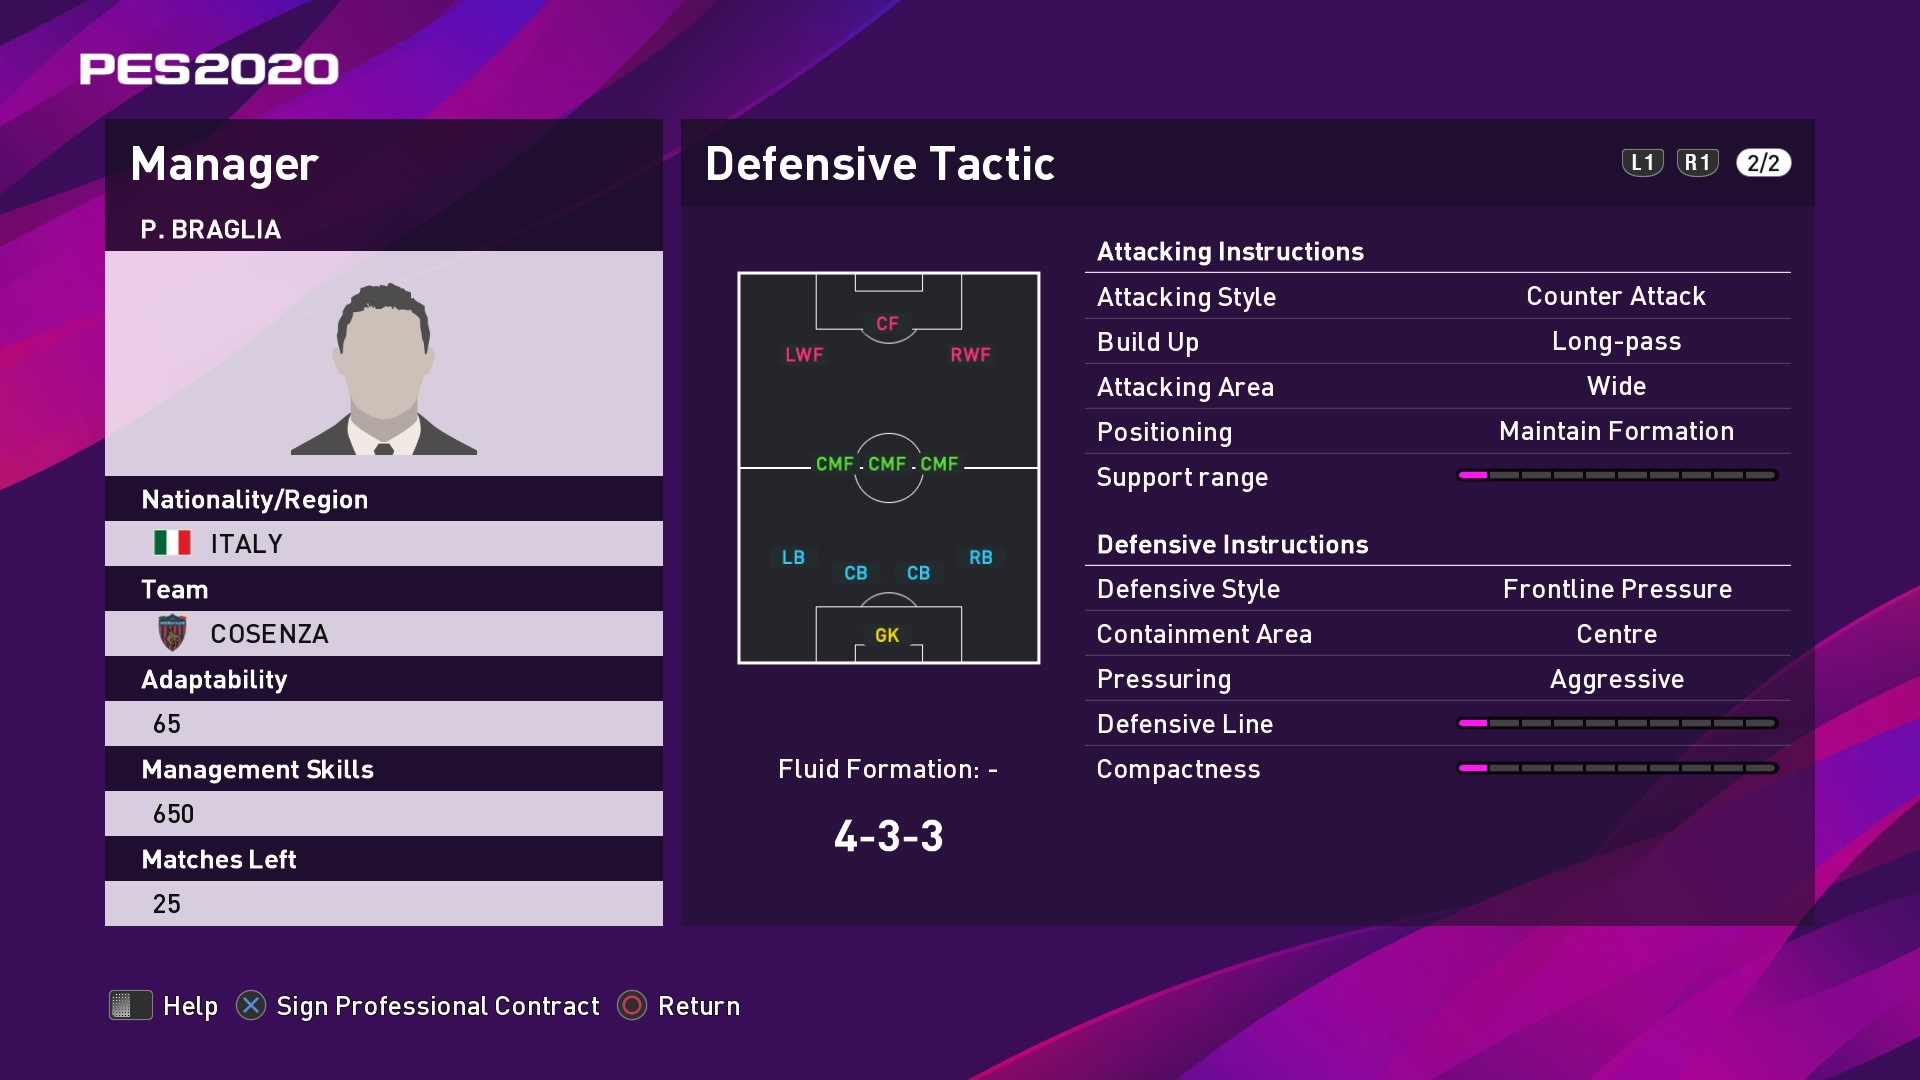 P. Braglia (2) (Piero Braglia) Defensive Tactic in PES 2020 myClub